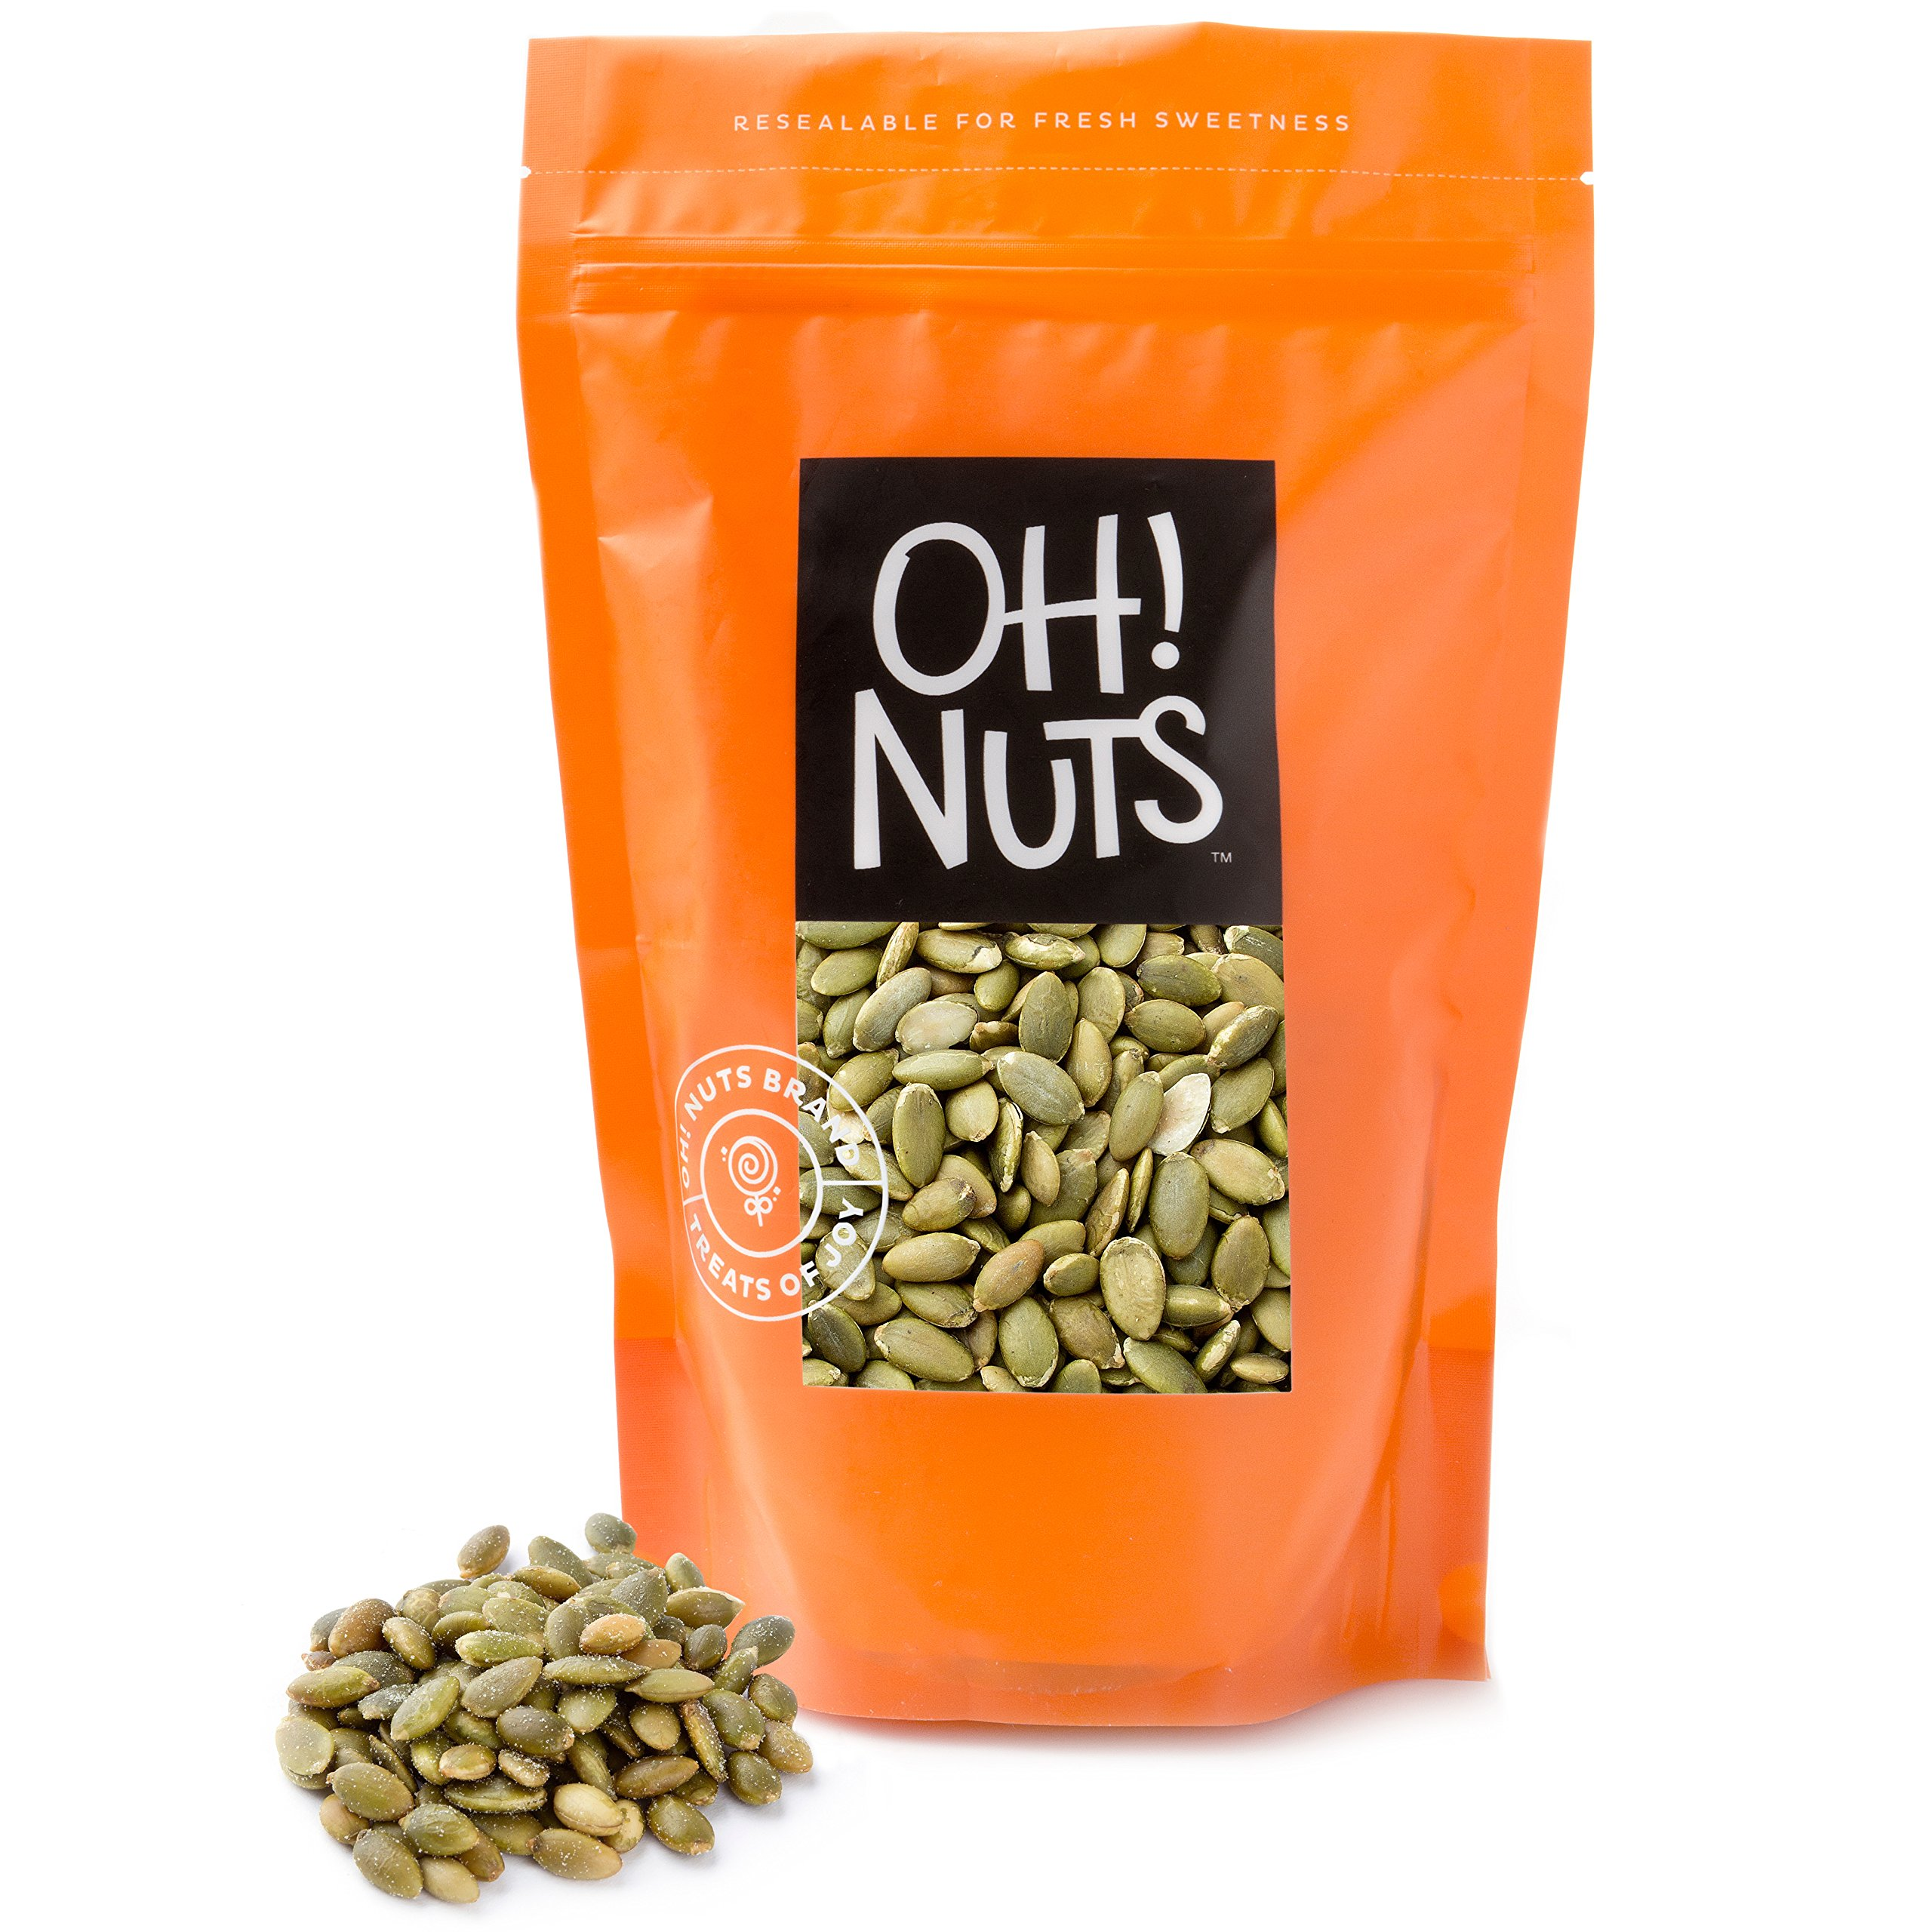 2LB Pumpkin Seeds Roasted Salted, Pepitas Roasted Salted Great for Healthy Snacking or Salad Toppings No Shell 2 LB - Oh! Nuts by Oh! Nuts